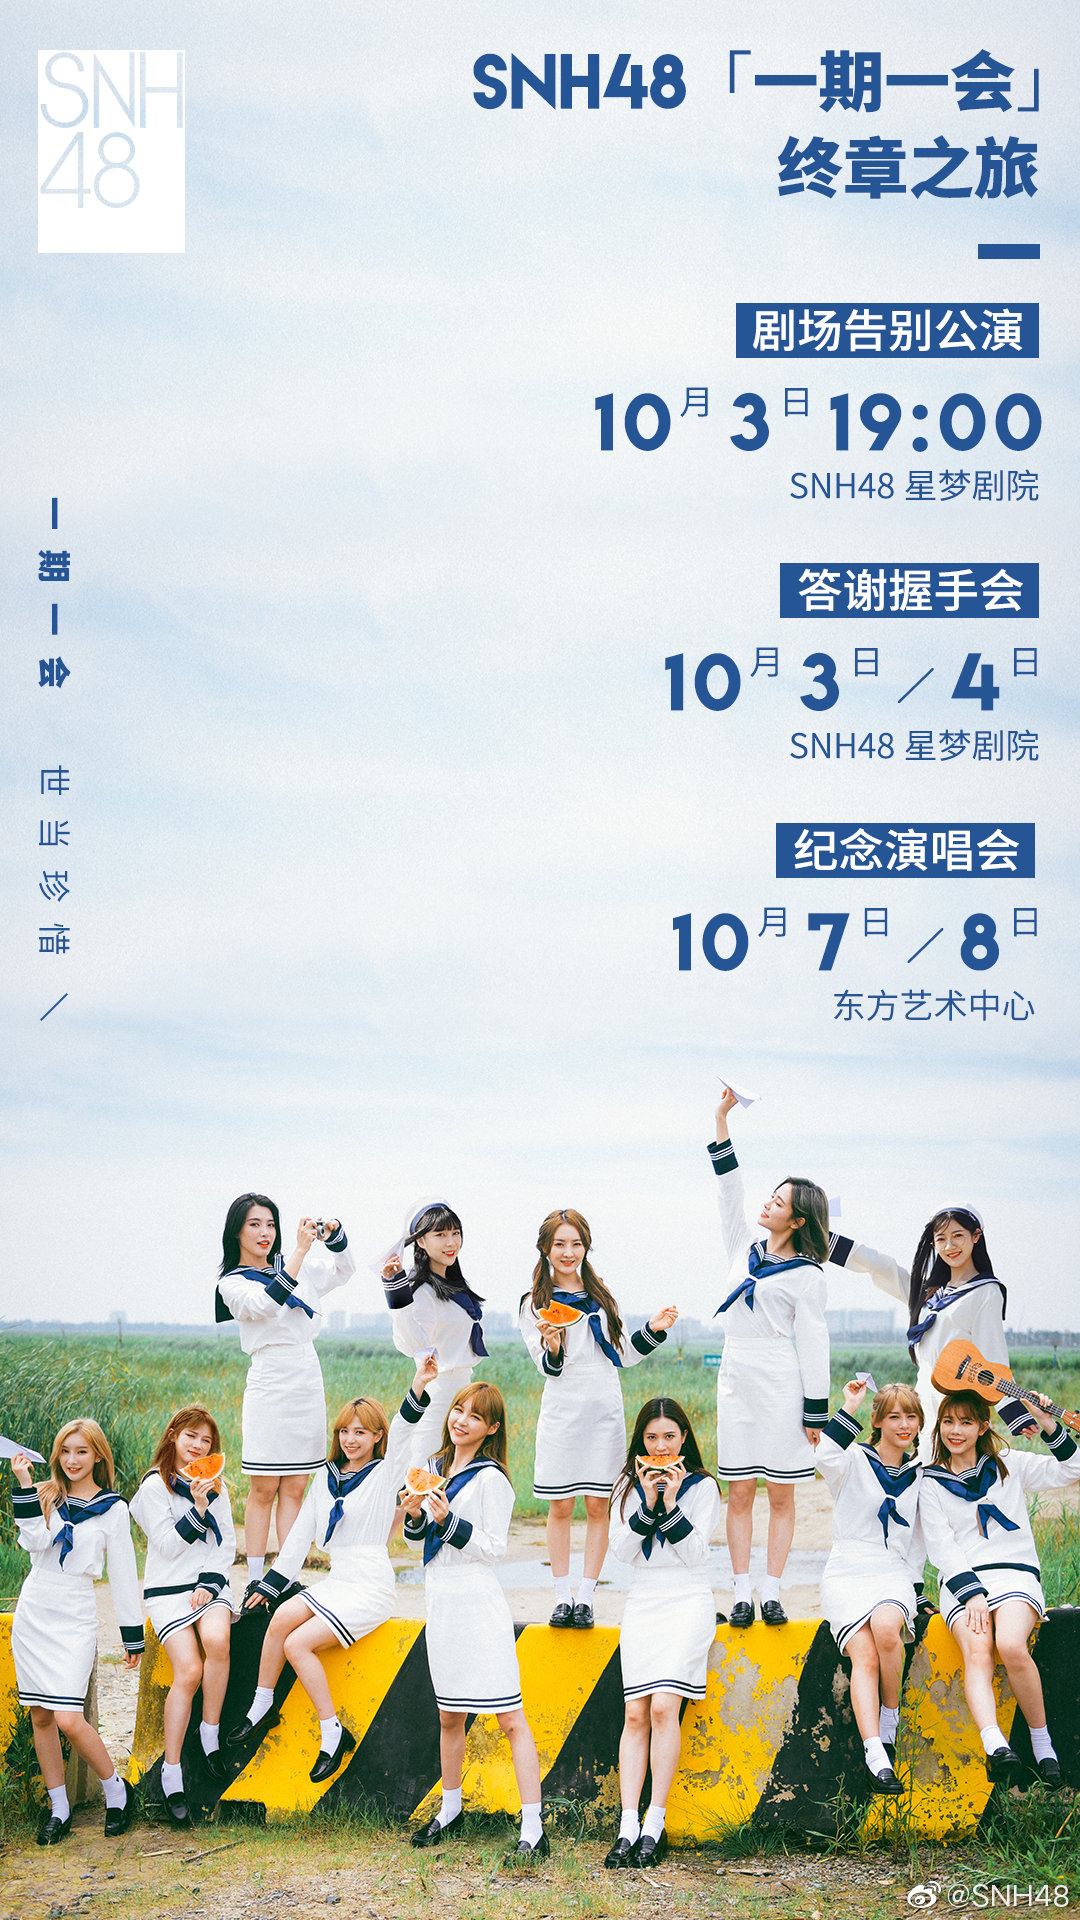 SNH48 1st Generation Journey to Graduation Special : The Final Chapter